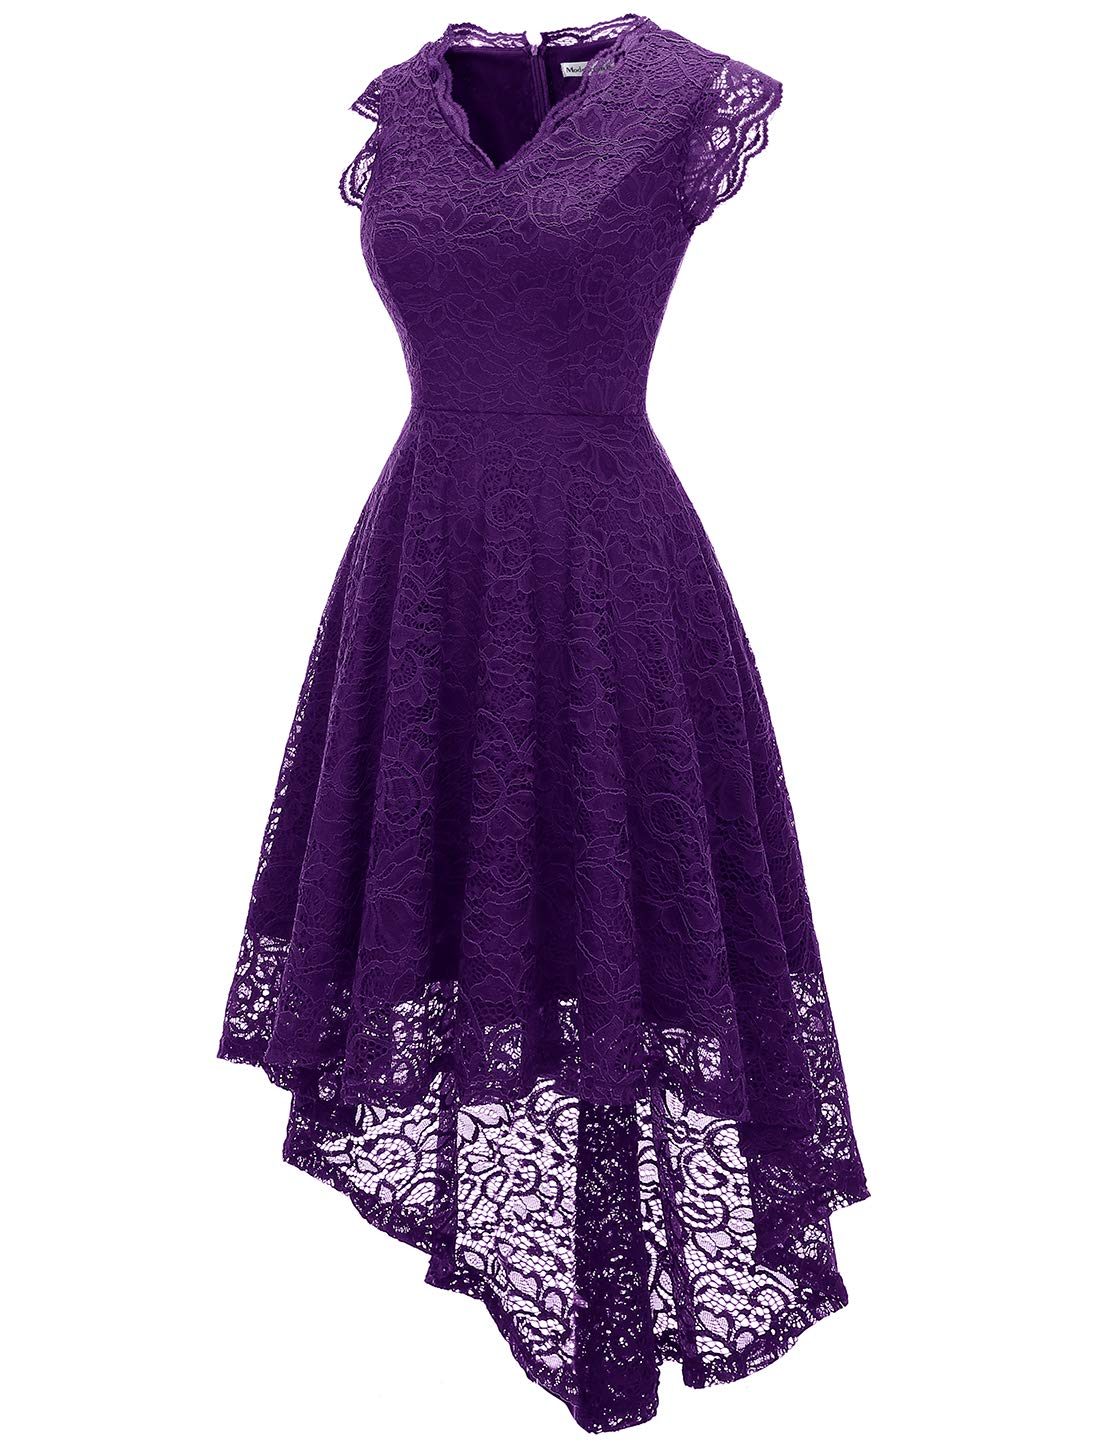 Modecrush Womens Ruffle Sleeve Formal Hi Low Floral Lace Cocktail Party Dresses Xl Purple